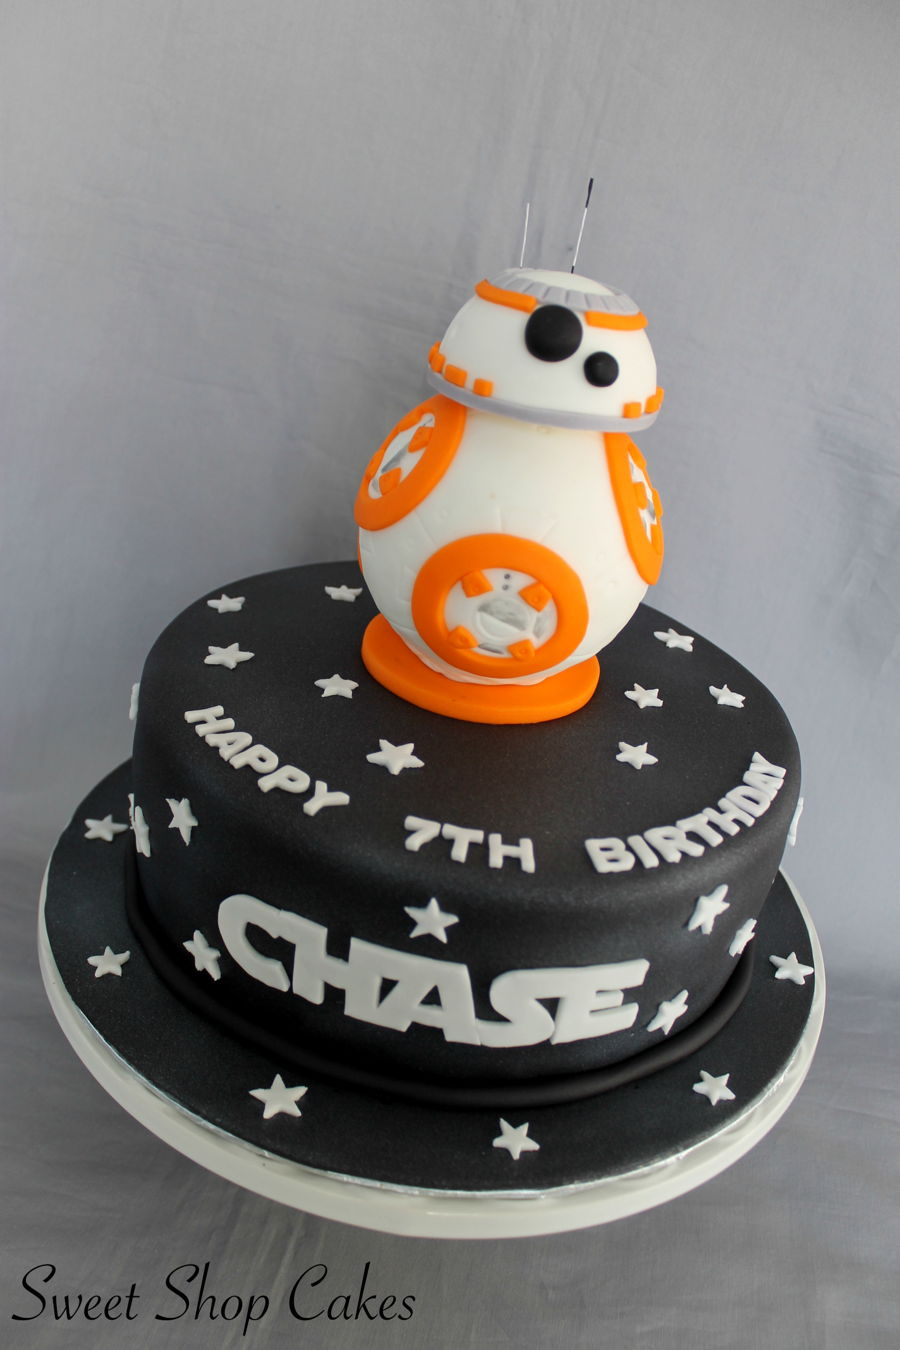 900_star-wars-bb-8-cake-937512ujSJn.jpg